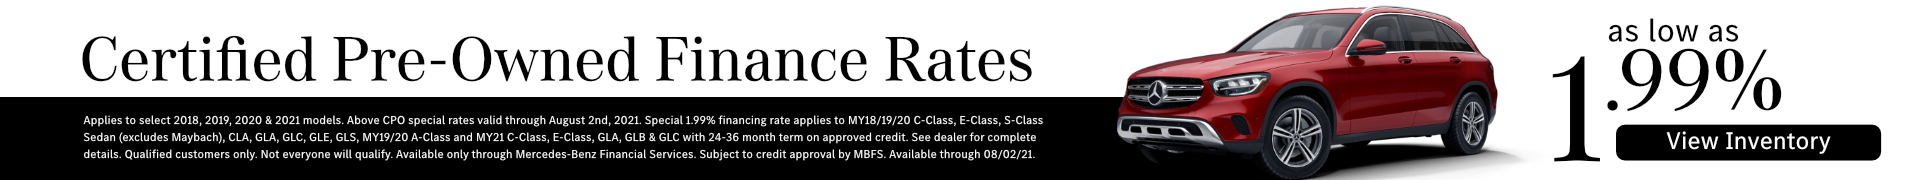 Certified Pre-Owned Mercedes-Benz Finance Rates in Temecula, CA